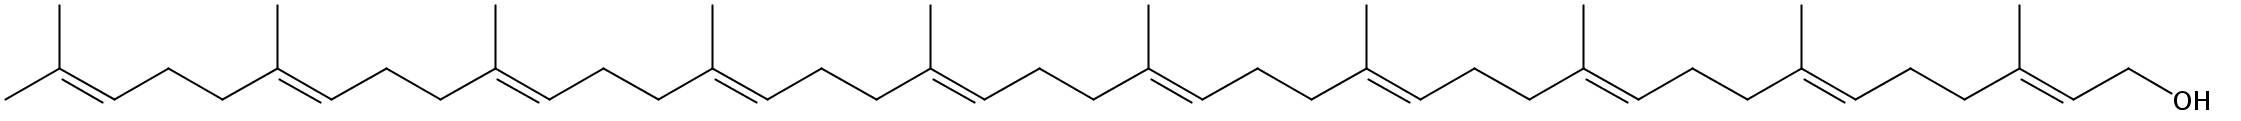 Structural formula of Decaprenol